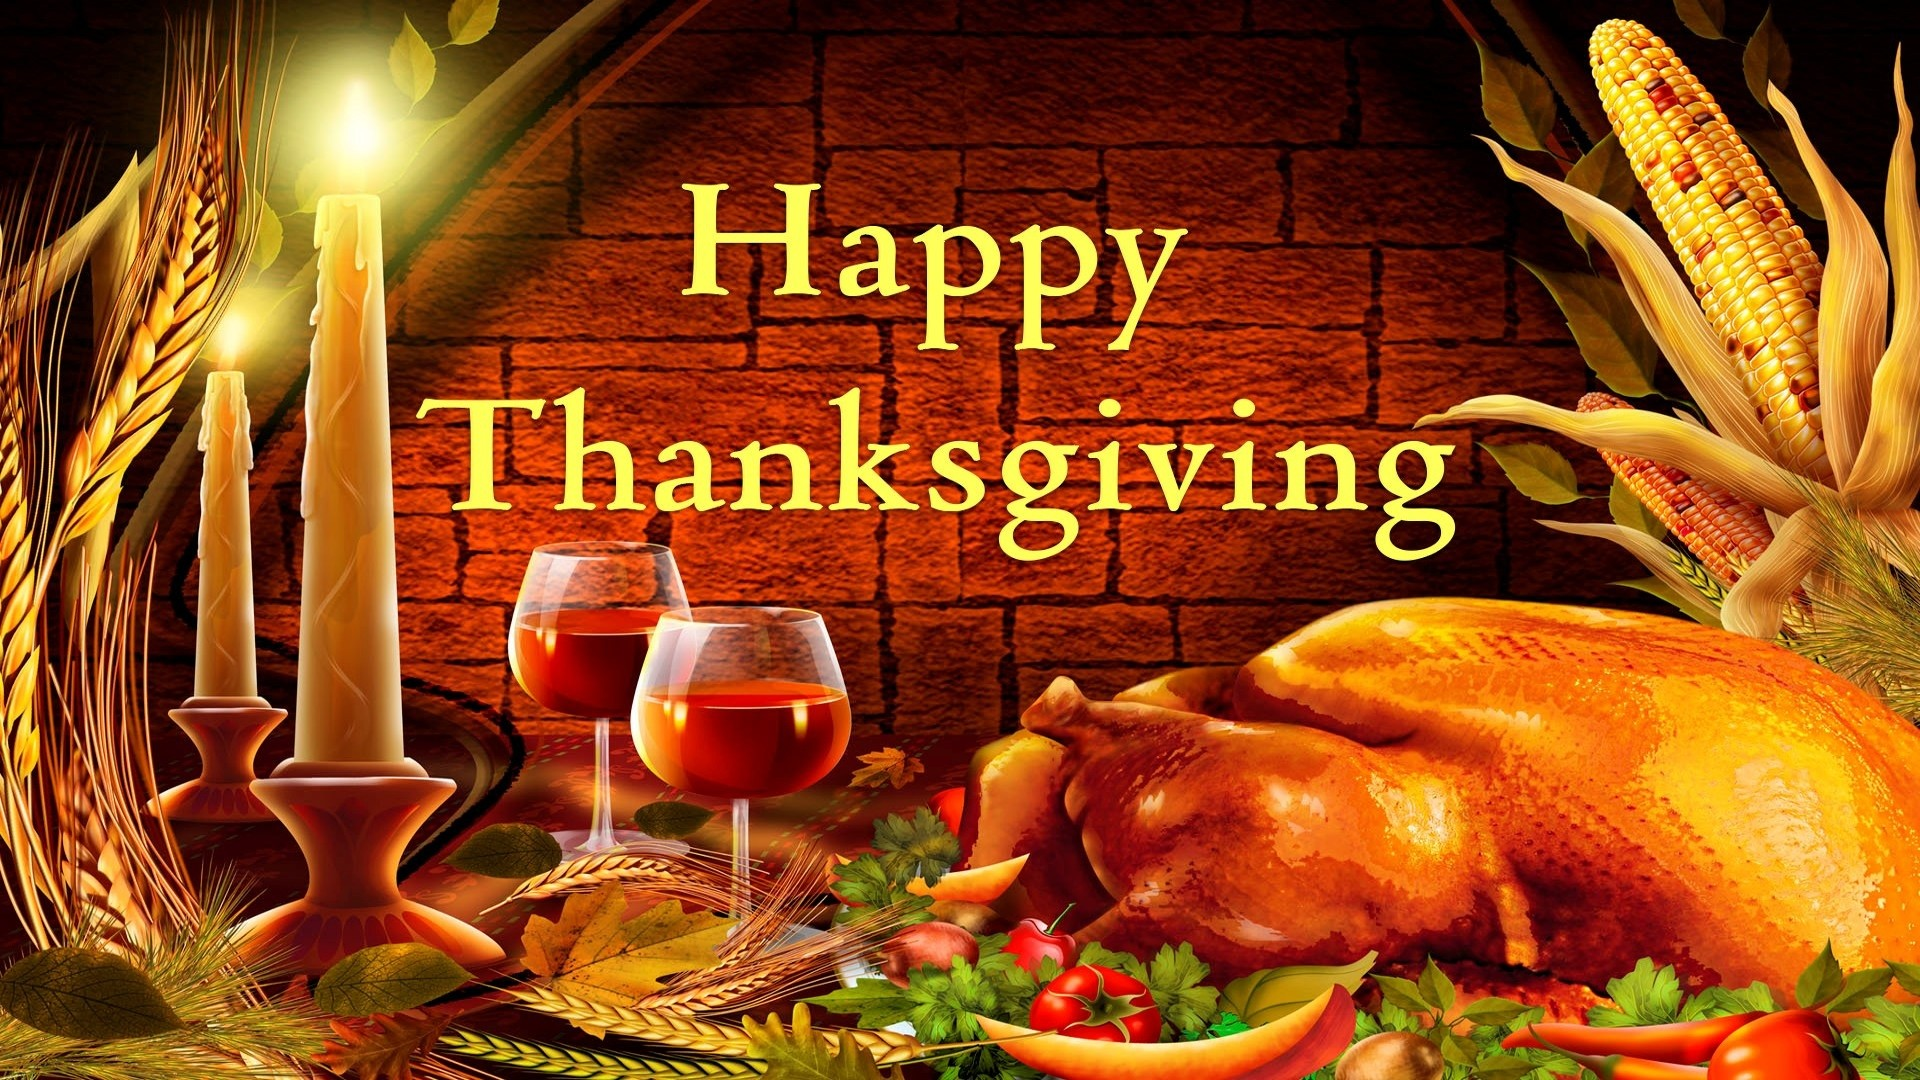 1920x1080 Wallpapers, wallpaper, Thanksgiving Dinner Wallpapers hd wallpaper .